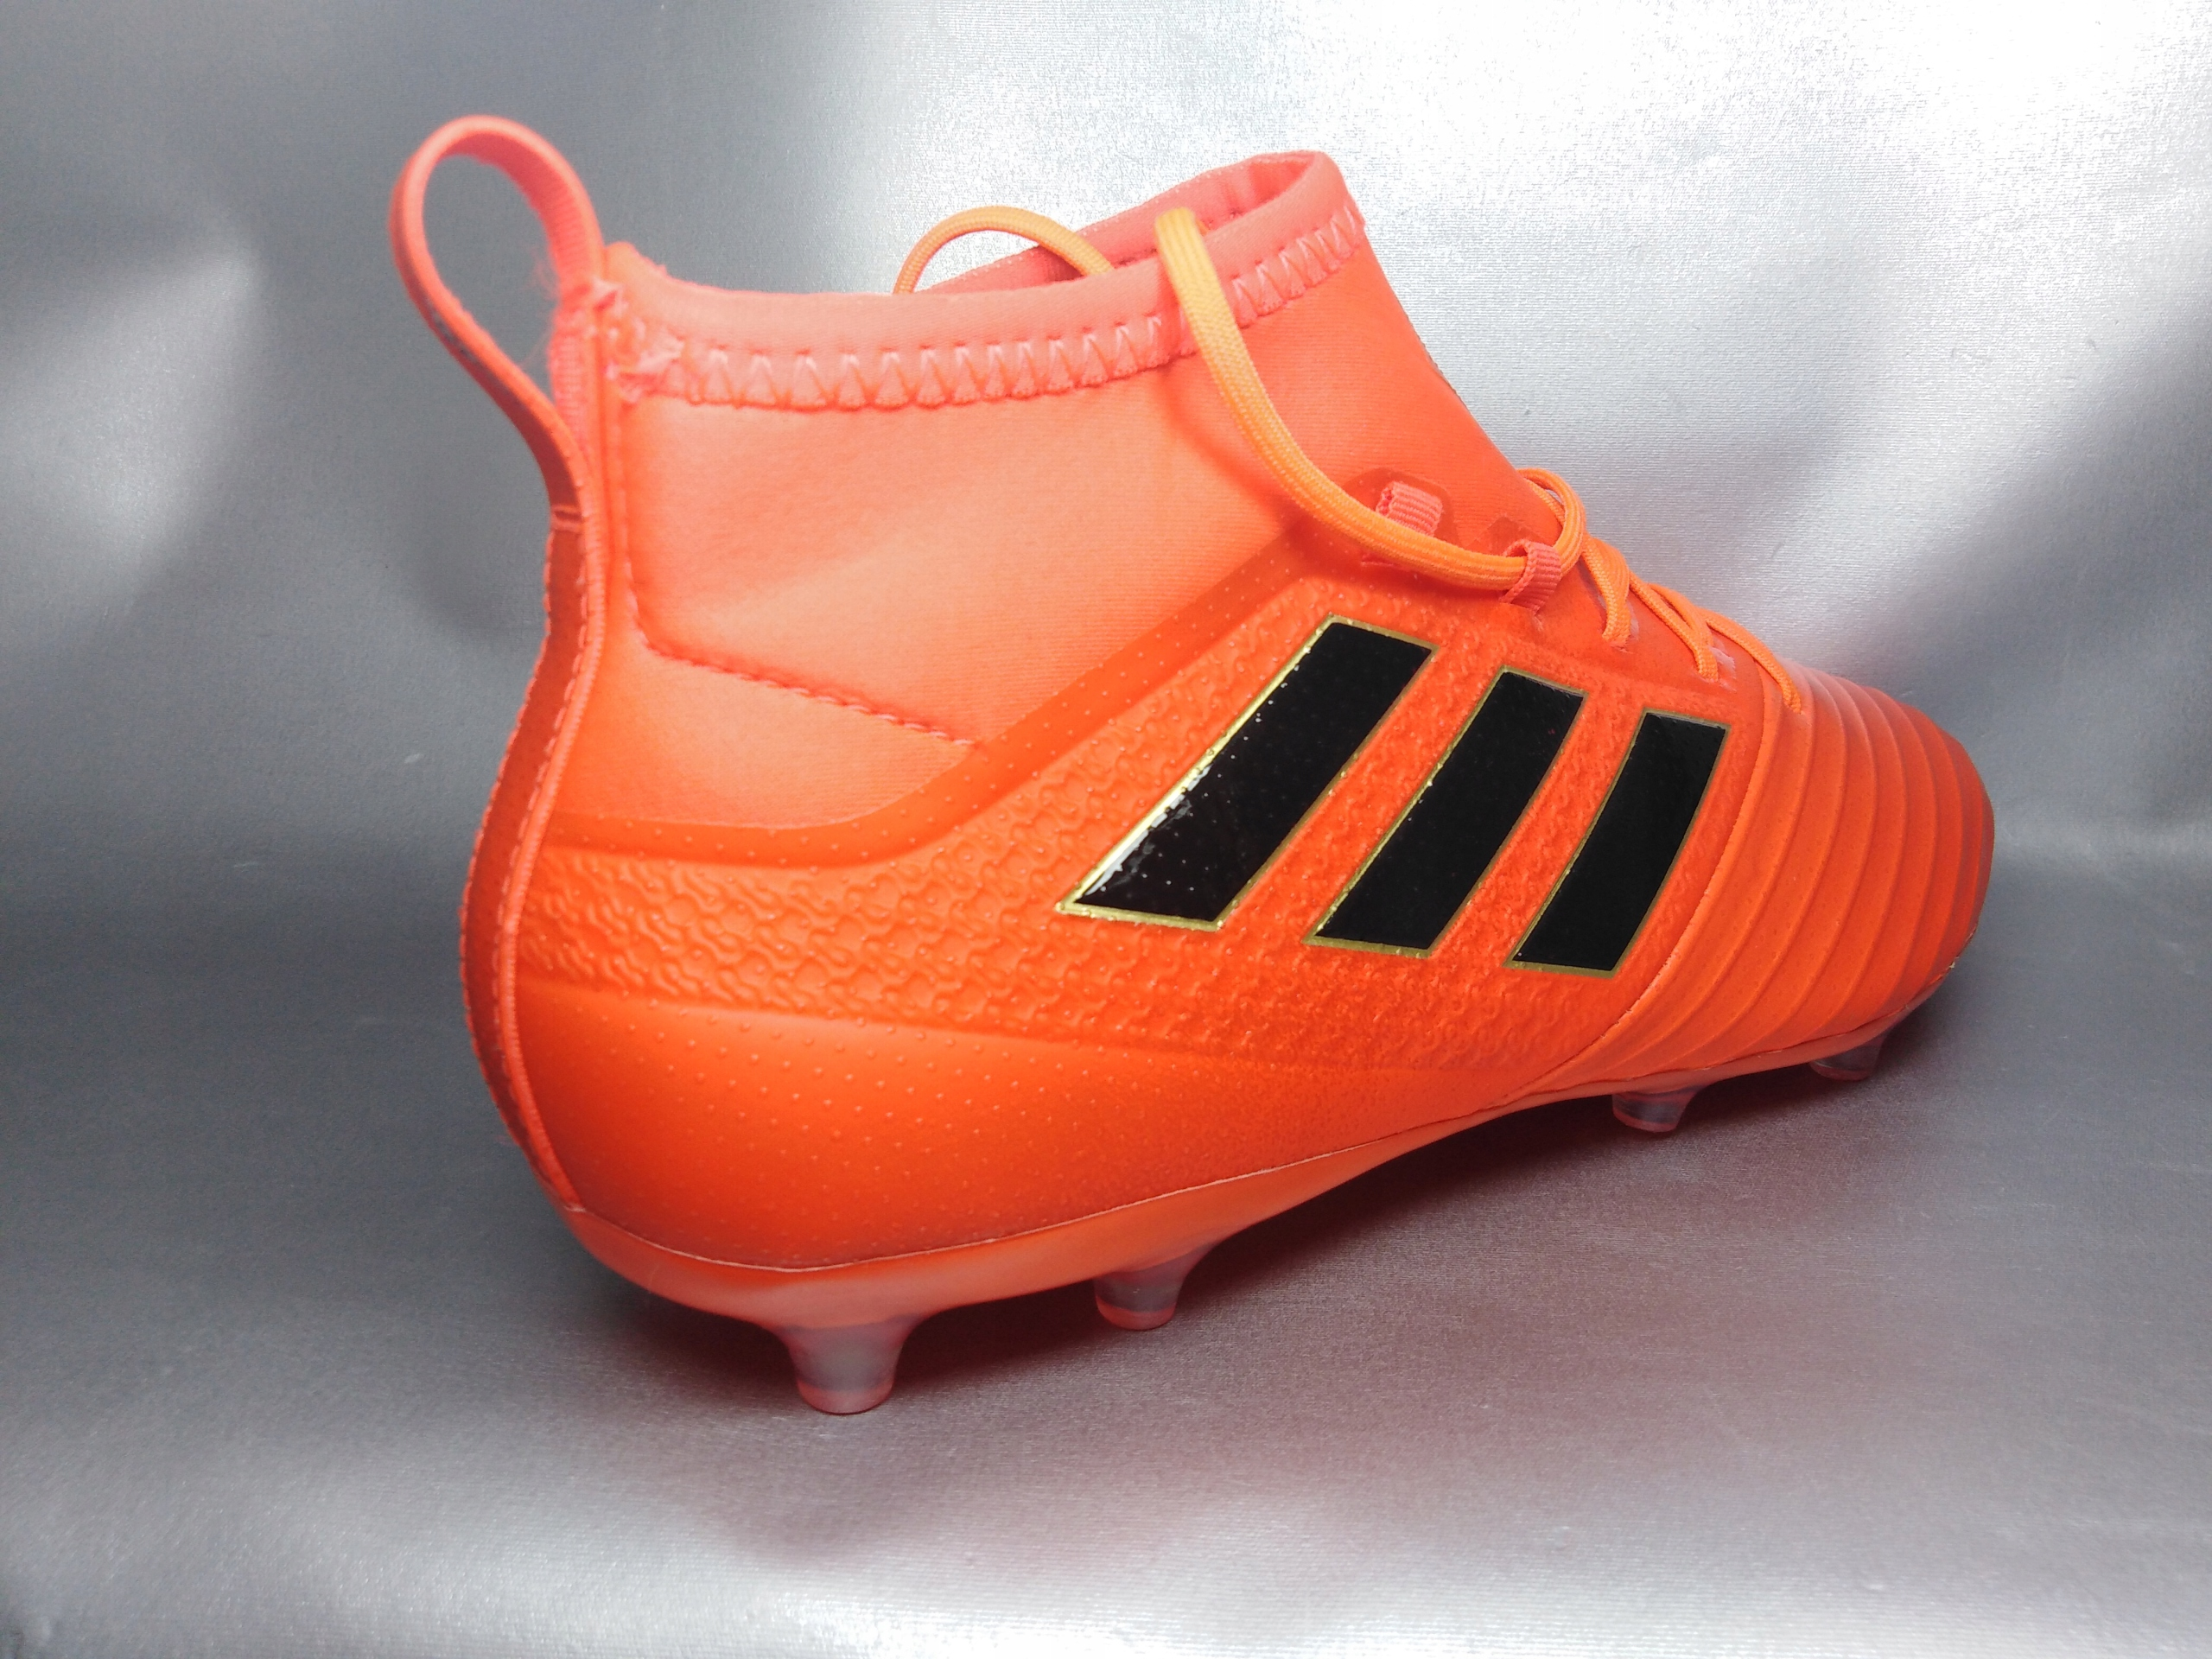 ADIDAS buty Ace 17.2 46 23 FG BY2190